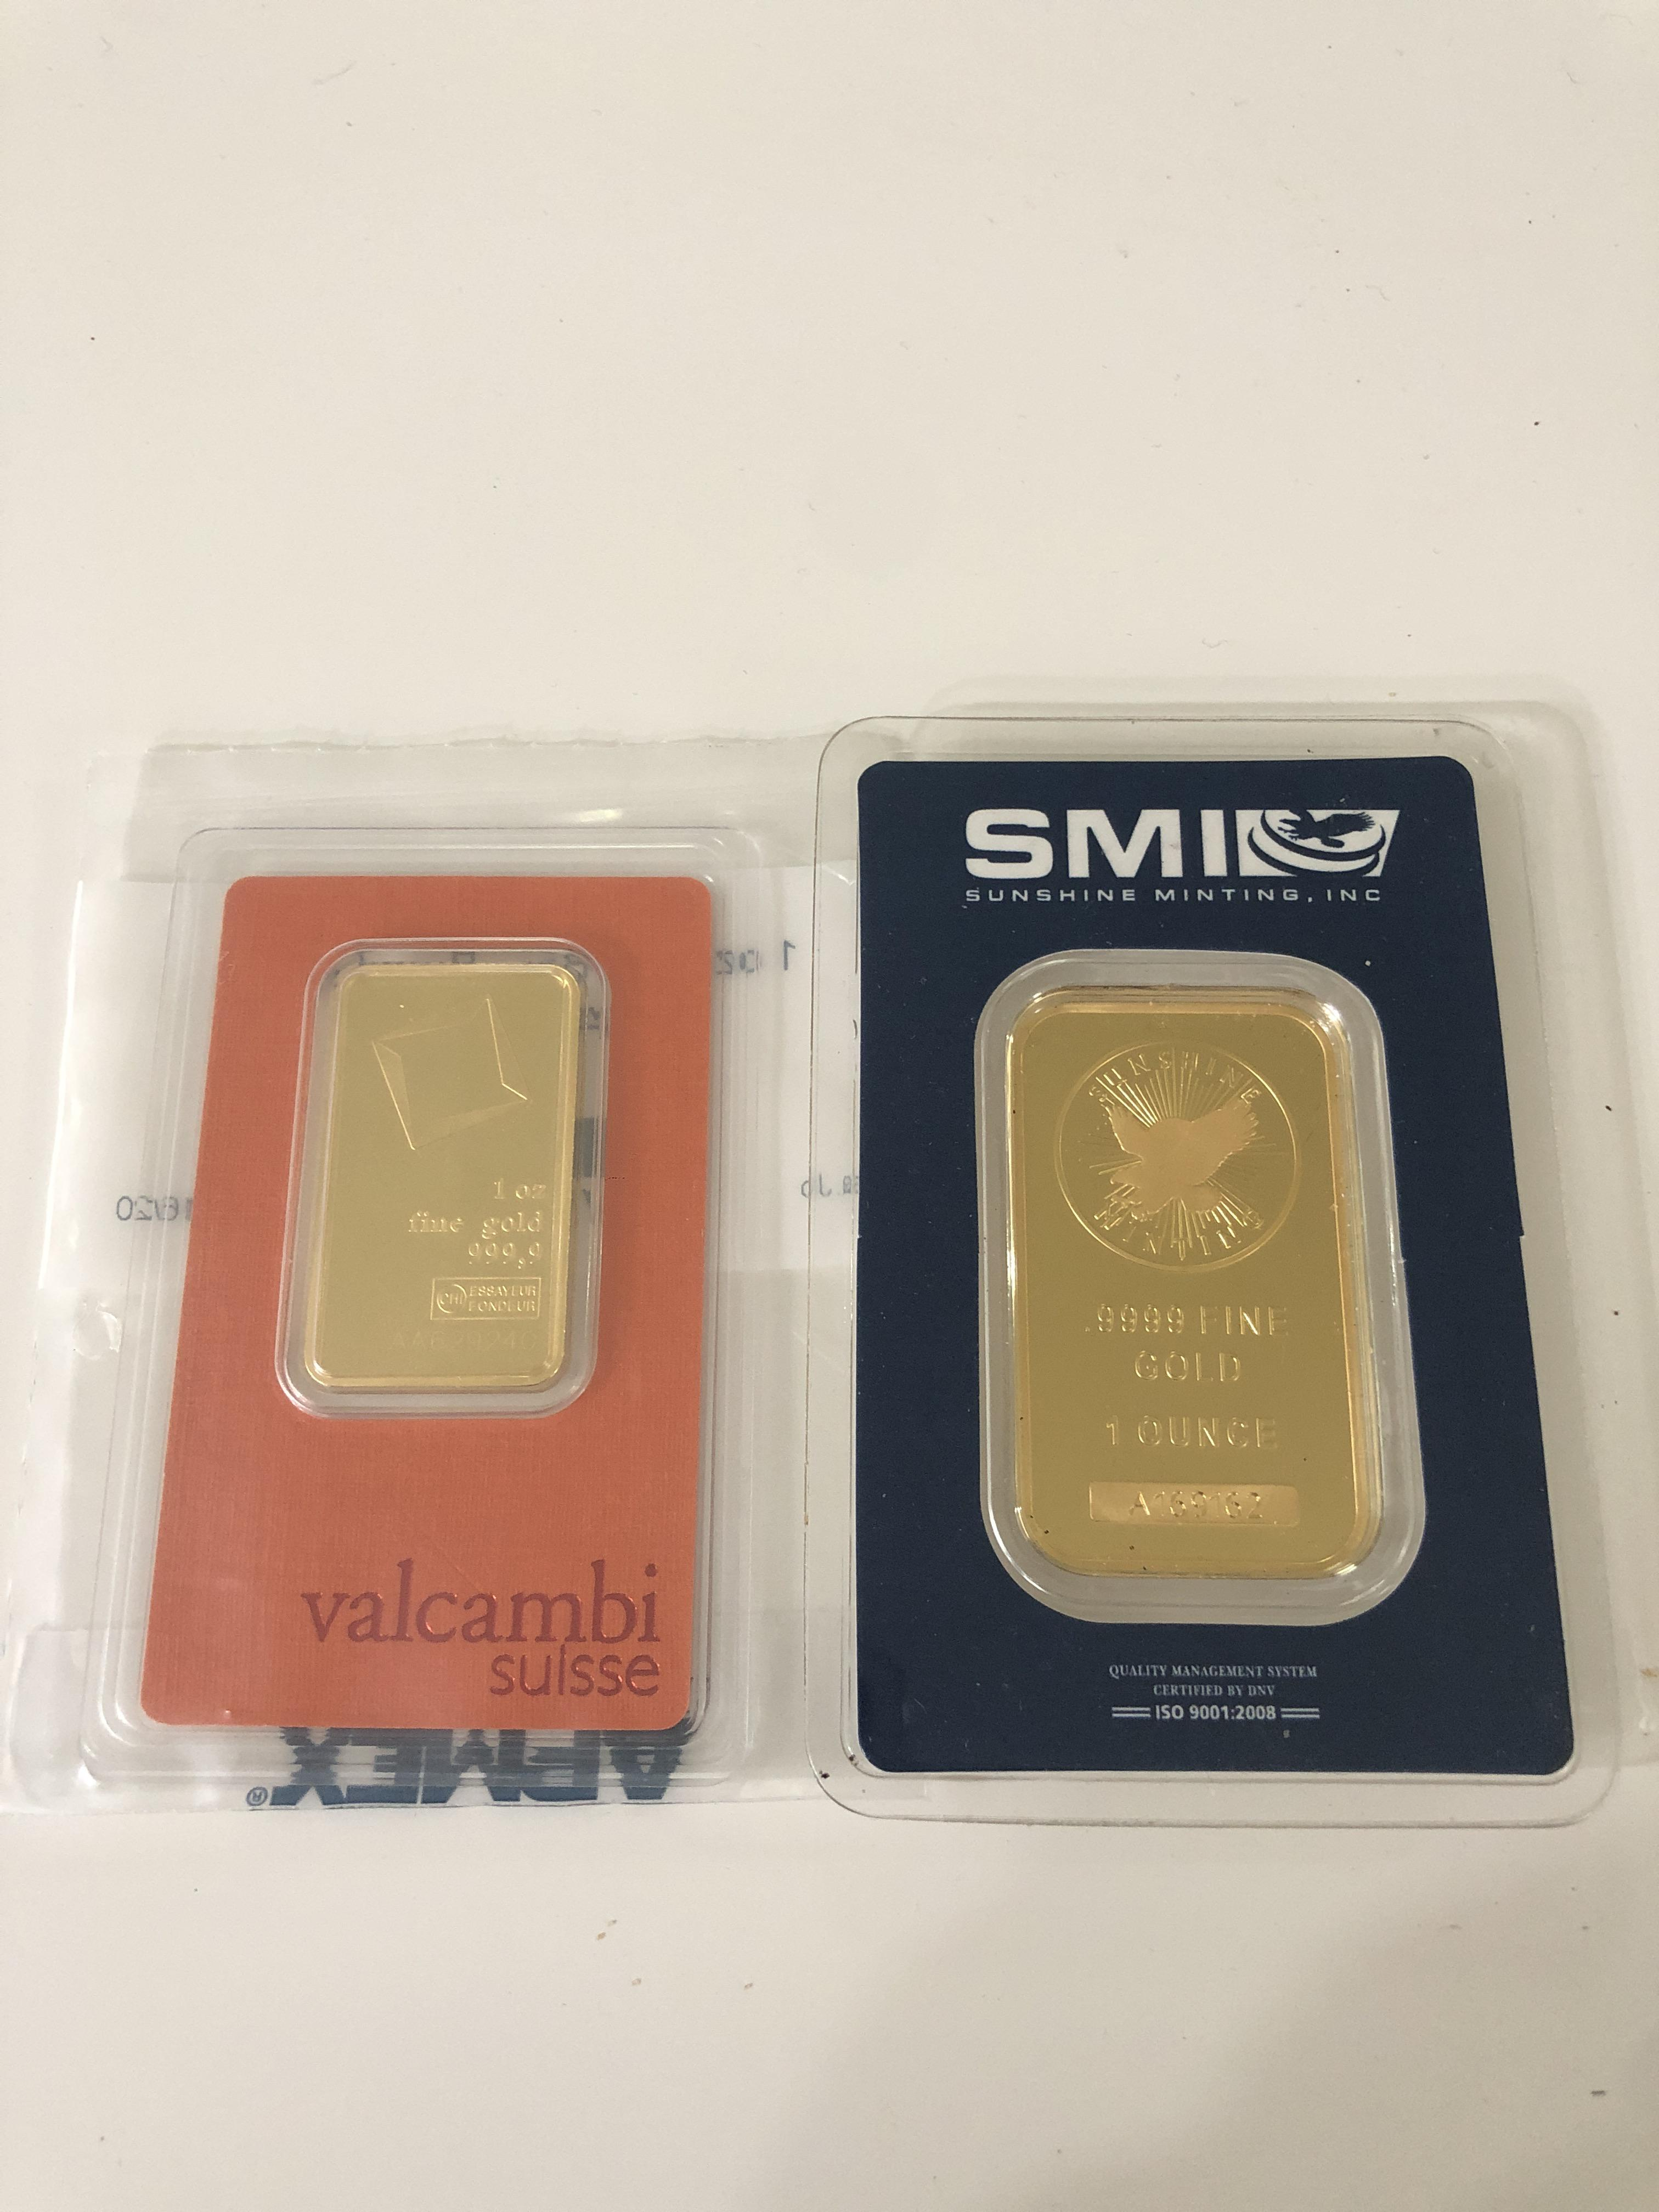 1 Ounce Gold Bar Size : ounce, These, Significantly, Different, Sizes?, Valcambi, Appears, Thinner., Purchases, APMEX., Buyer,, Would, Appreciate, Here.